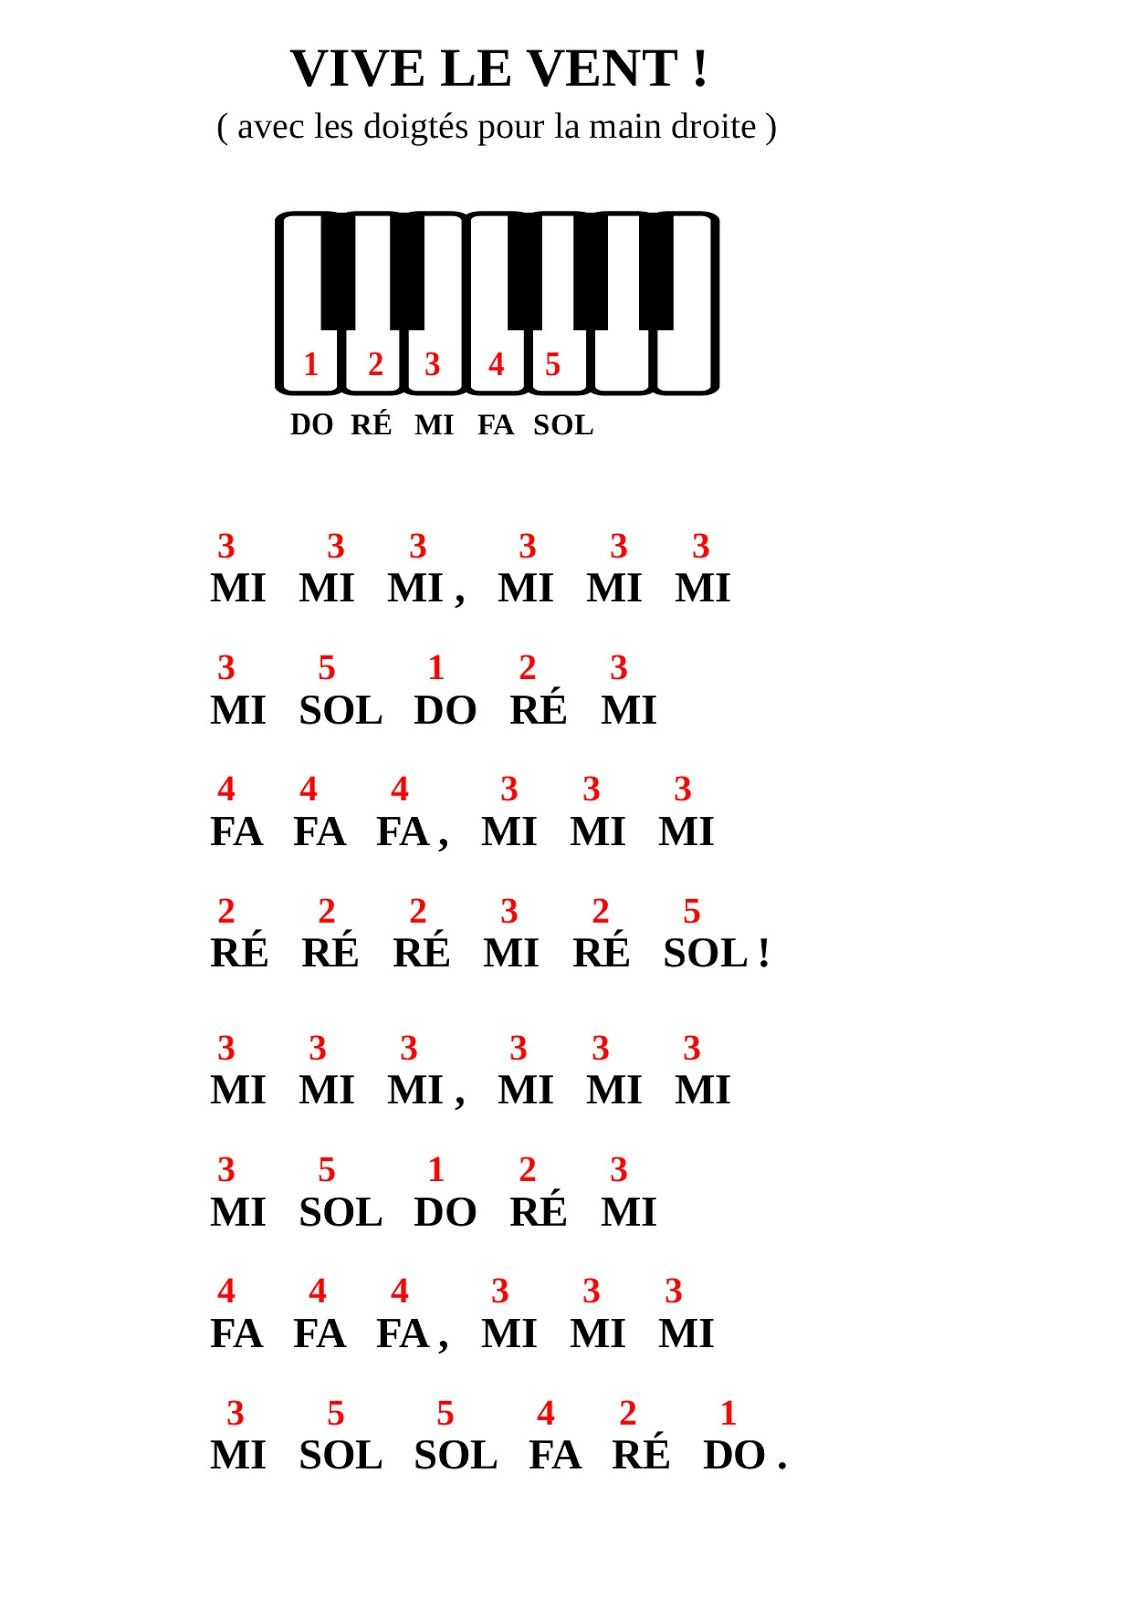 Introducing Do Re Mi Fun Music Theory With Images Learn